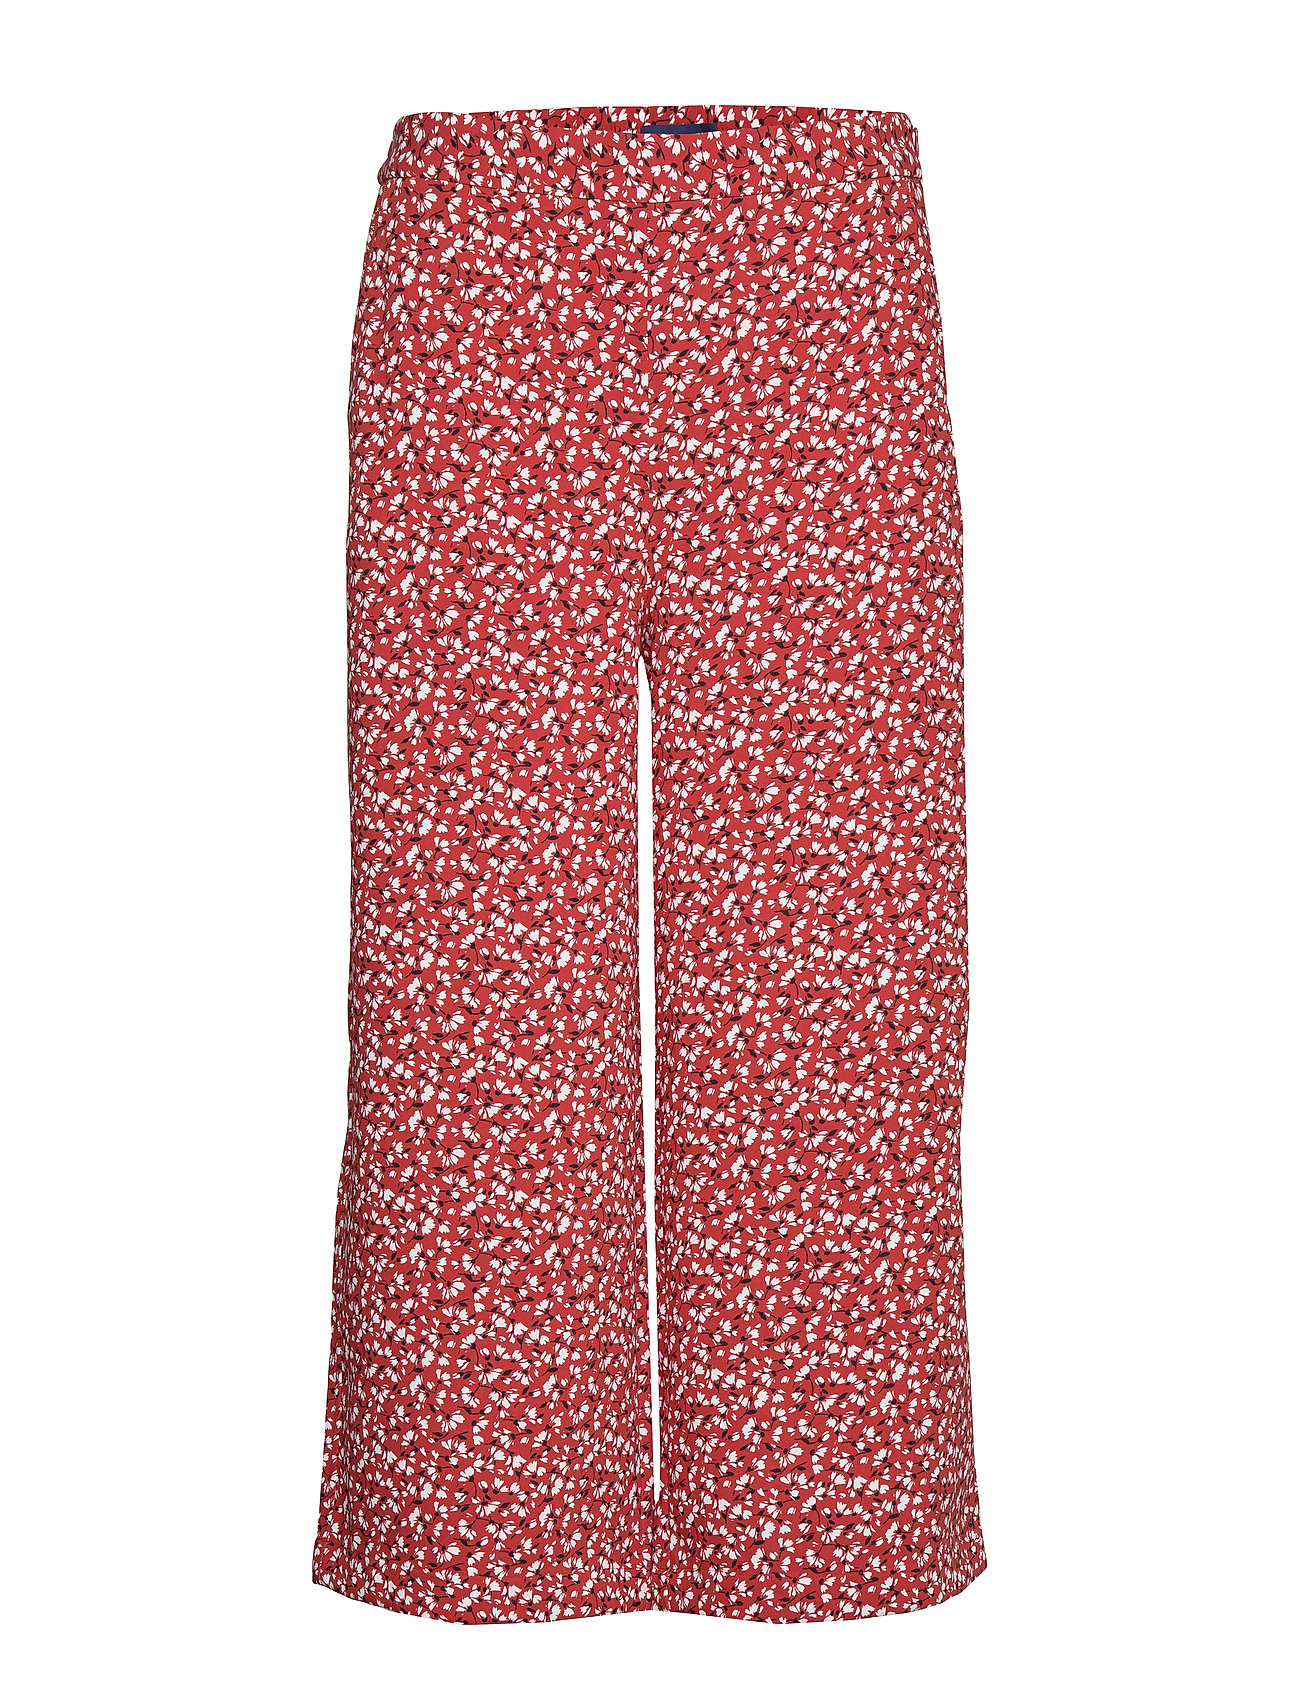 Gant D2. FRENCH FLORAL FLUID CULOTTE - IRON RED